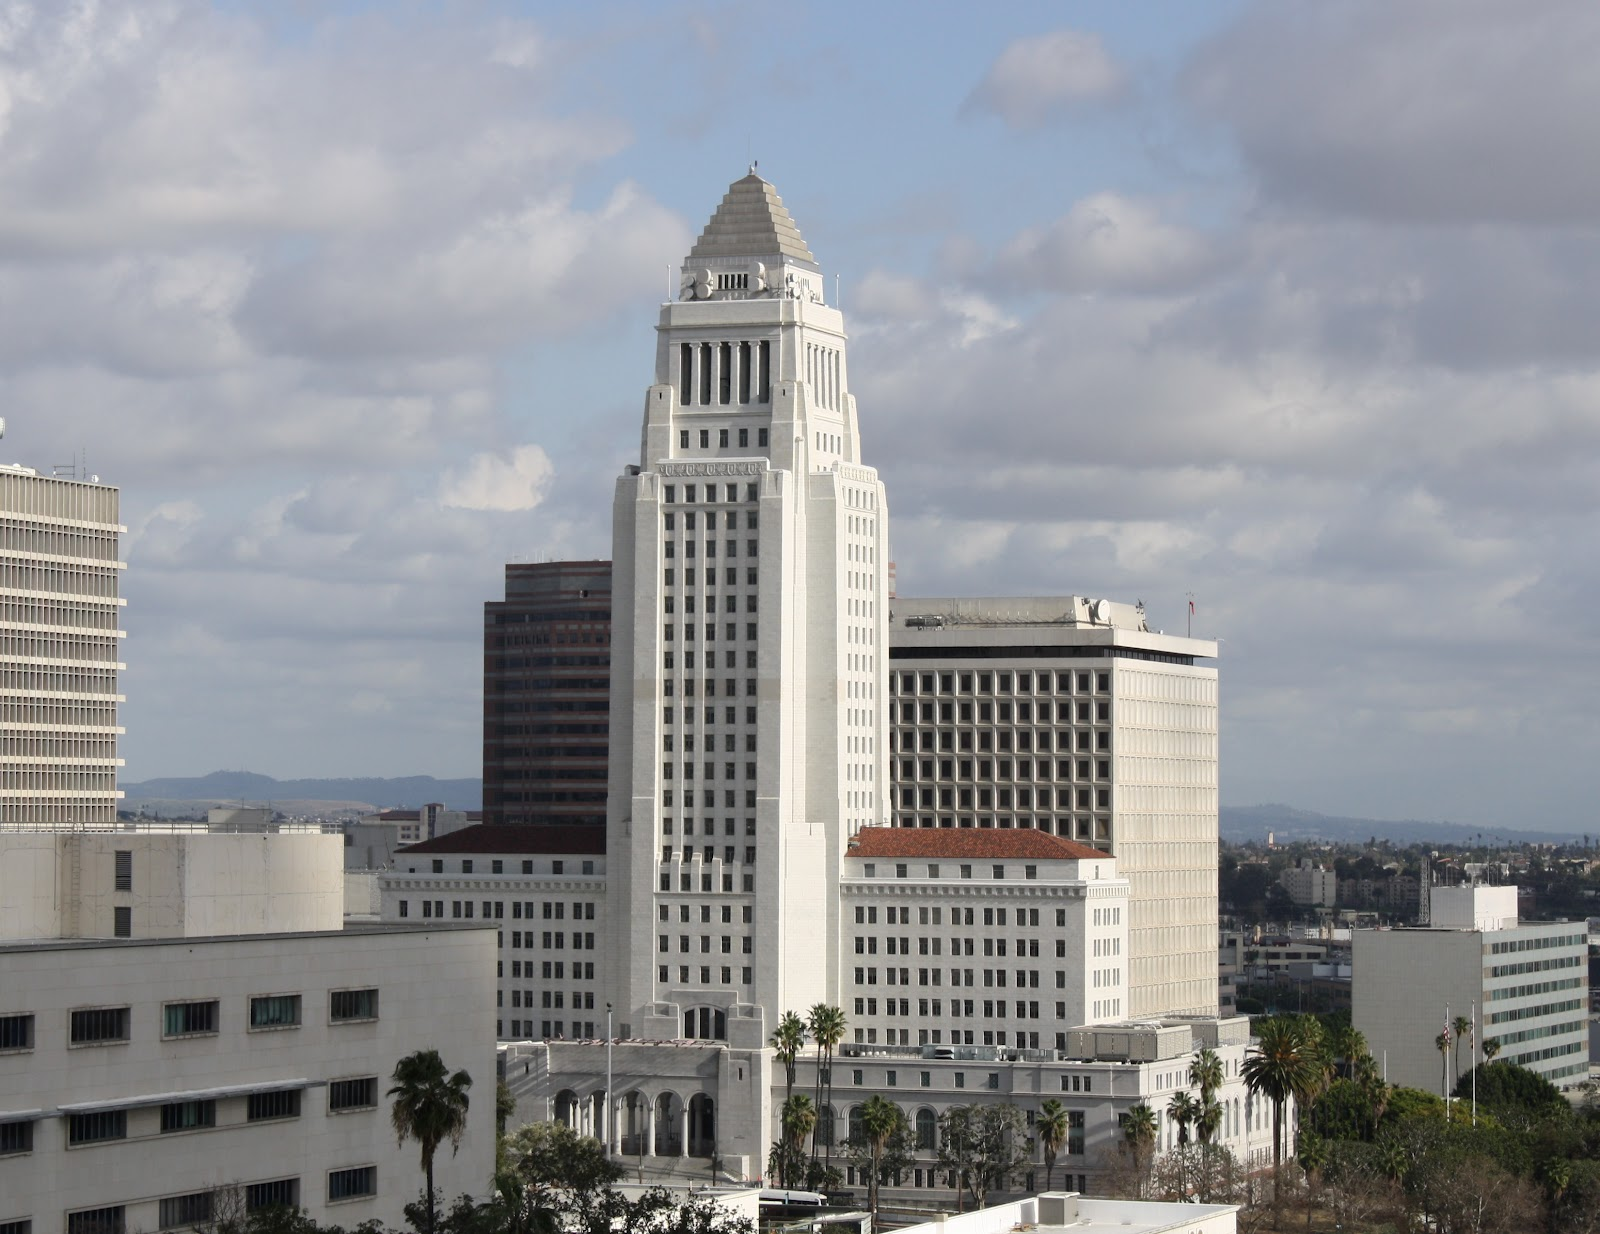 City Of Los Angeles Organizational Chart: Los Angeles City Hall (from the West).jpg - Wikipedia,Chart